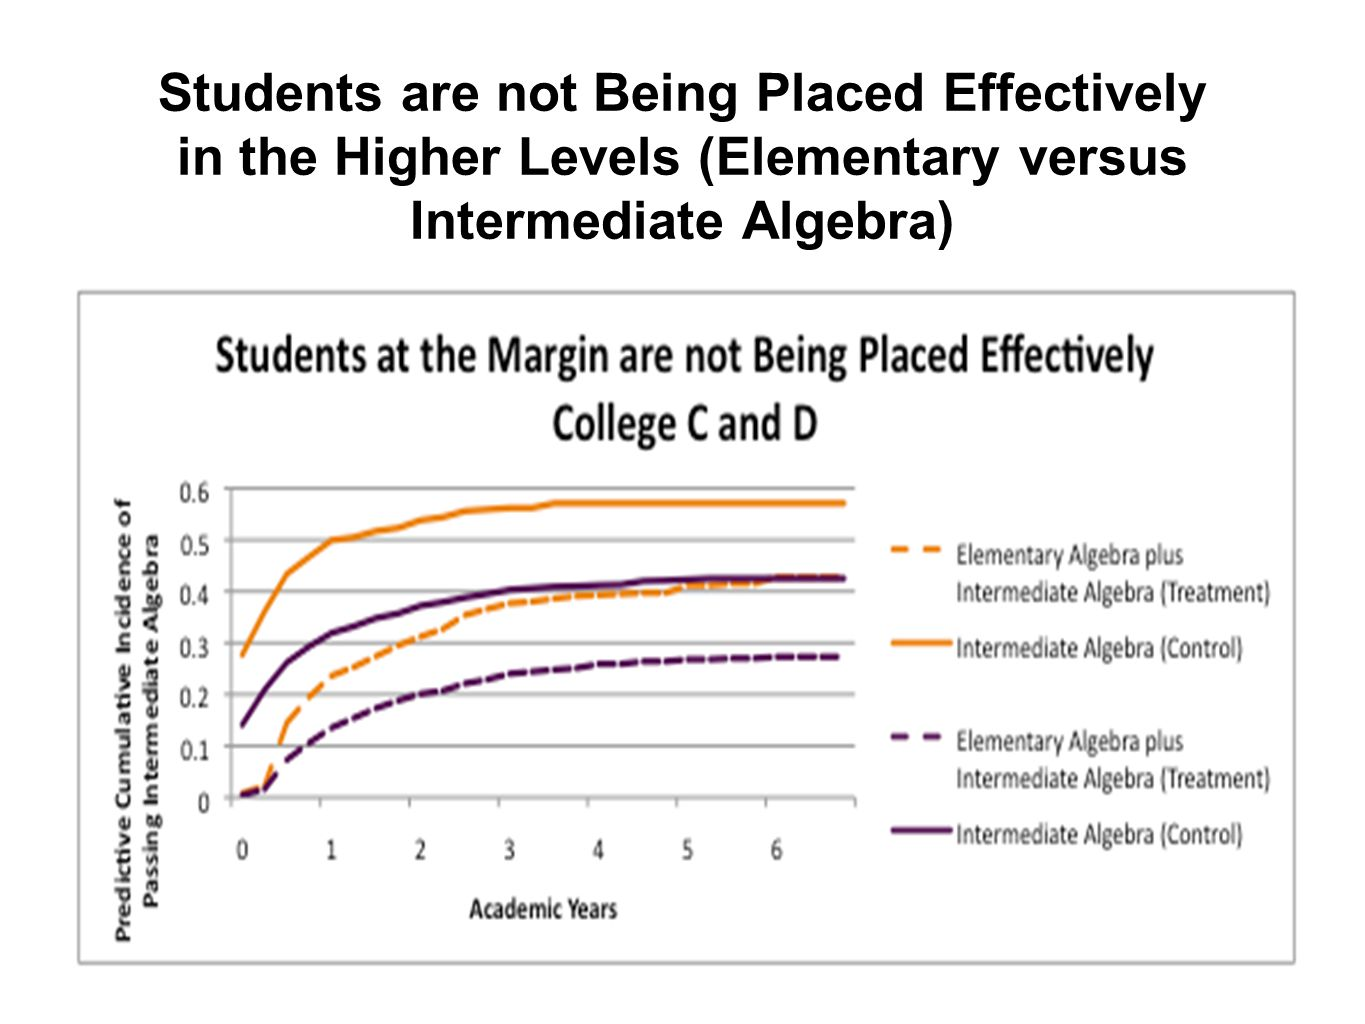 Students are not Being Placed Effectively in the Higher Levels (Elementary versus Intermediate Algebra)